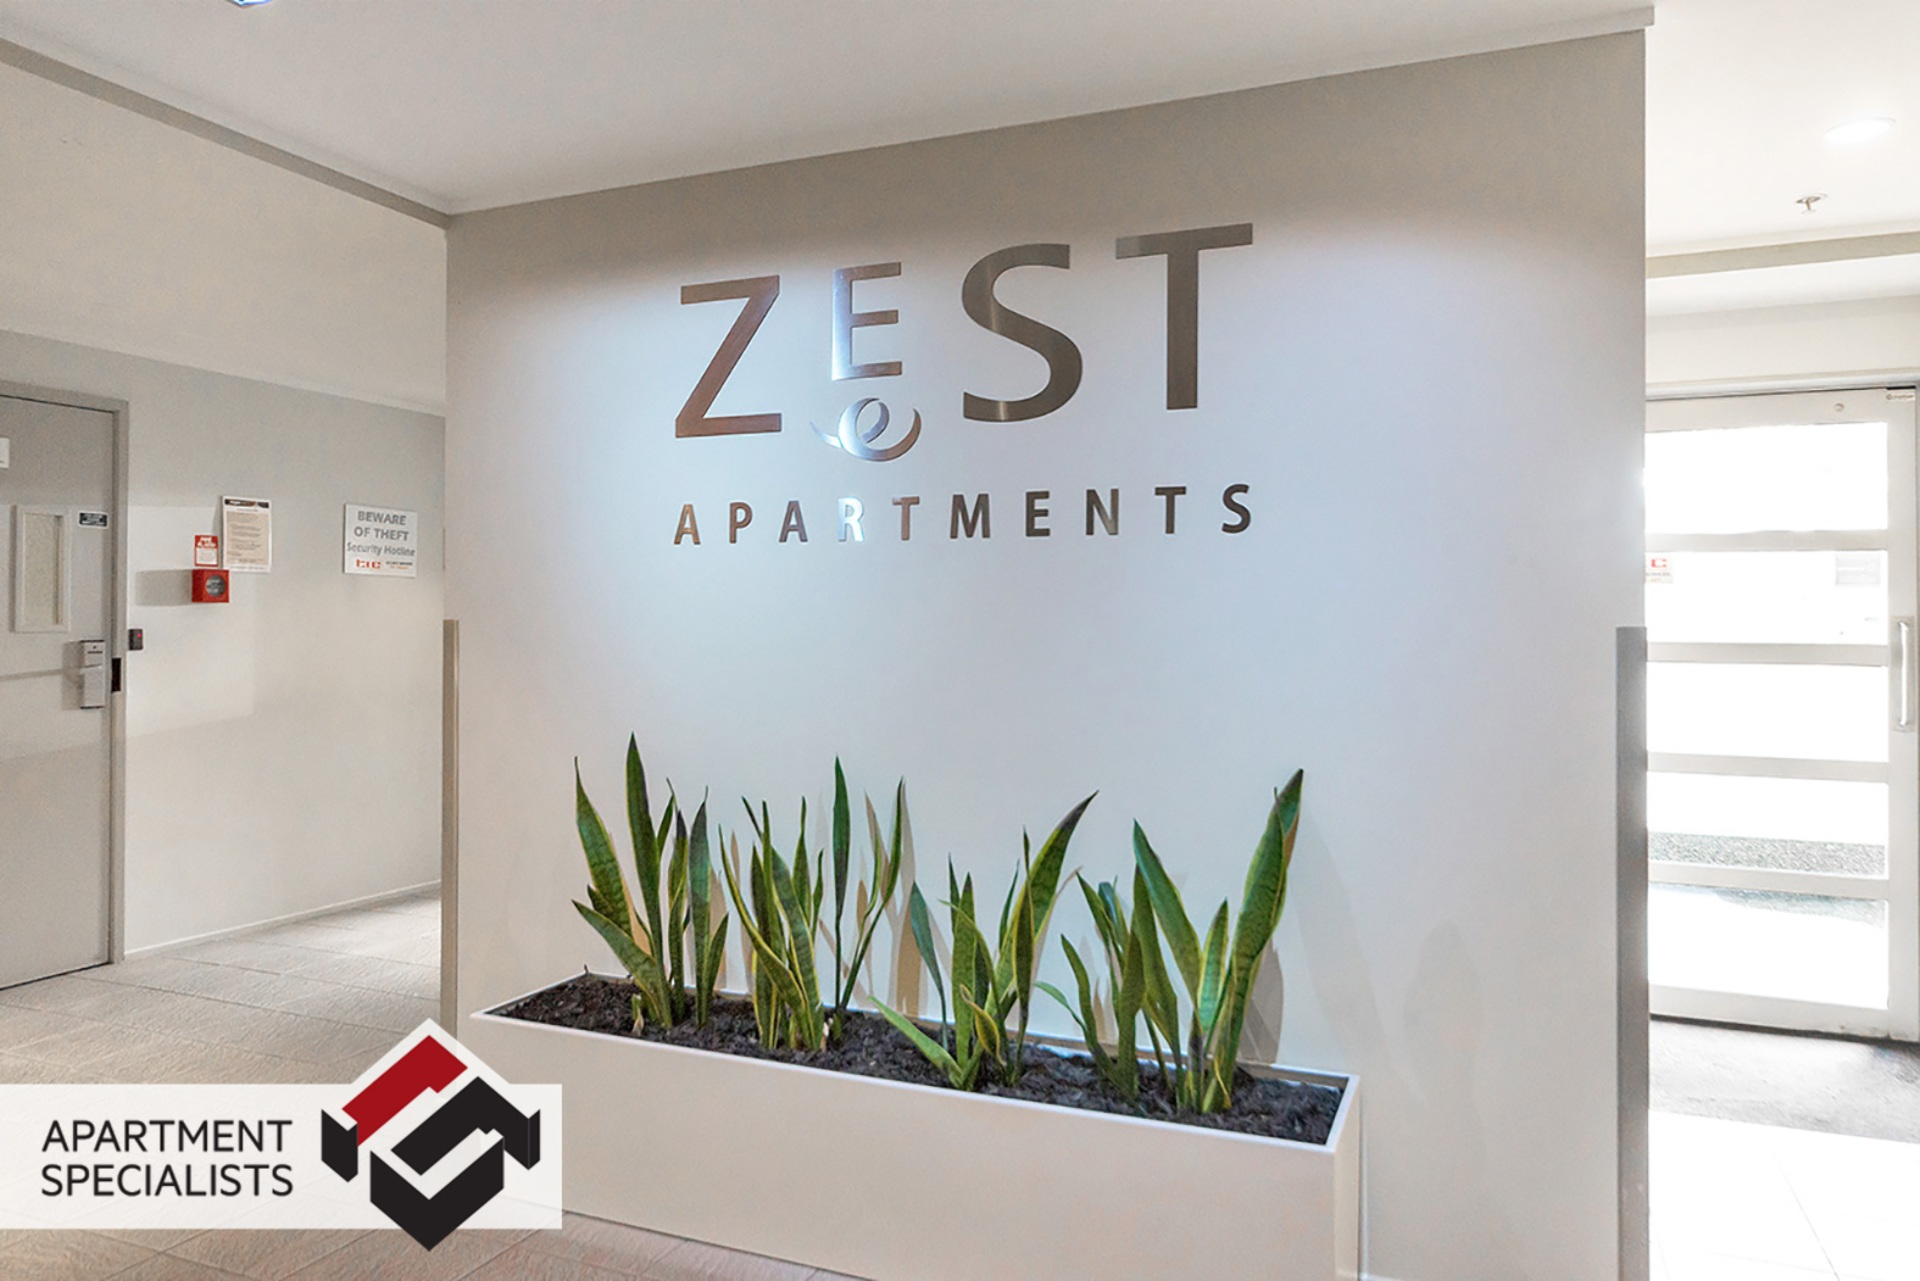 4 | 72 Nelson Street, City Centre | Apartment Specialists